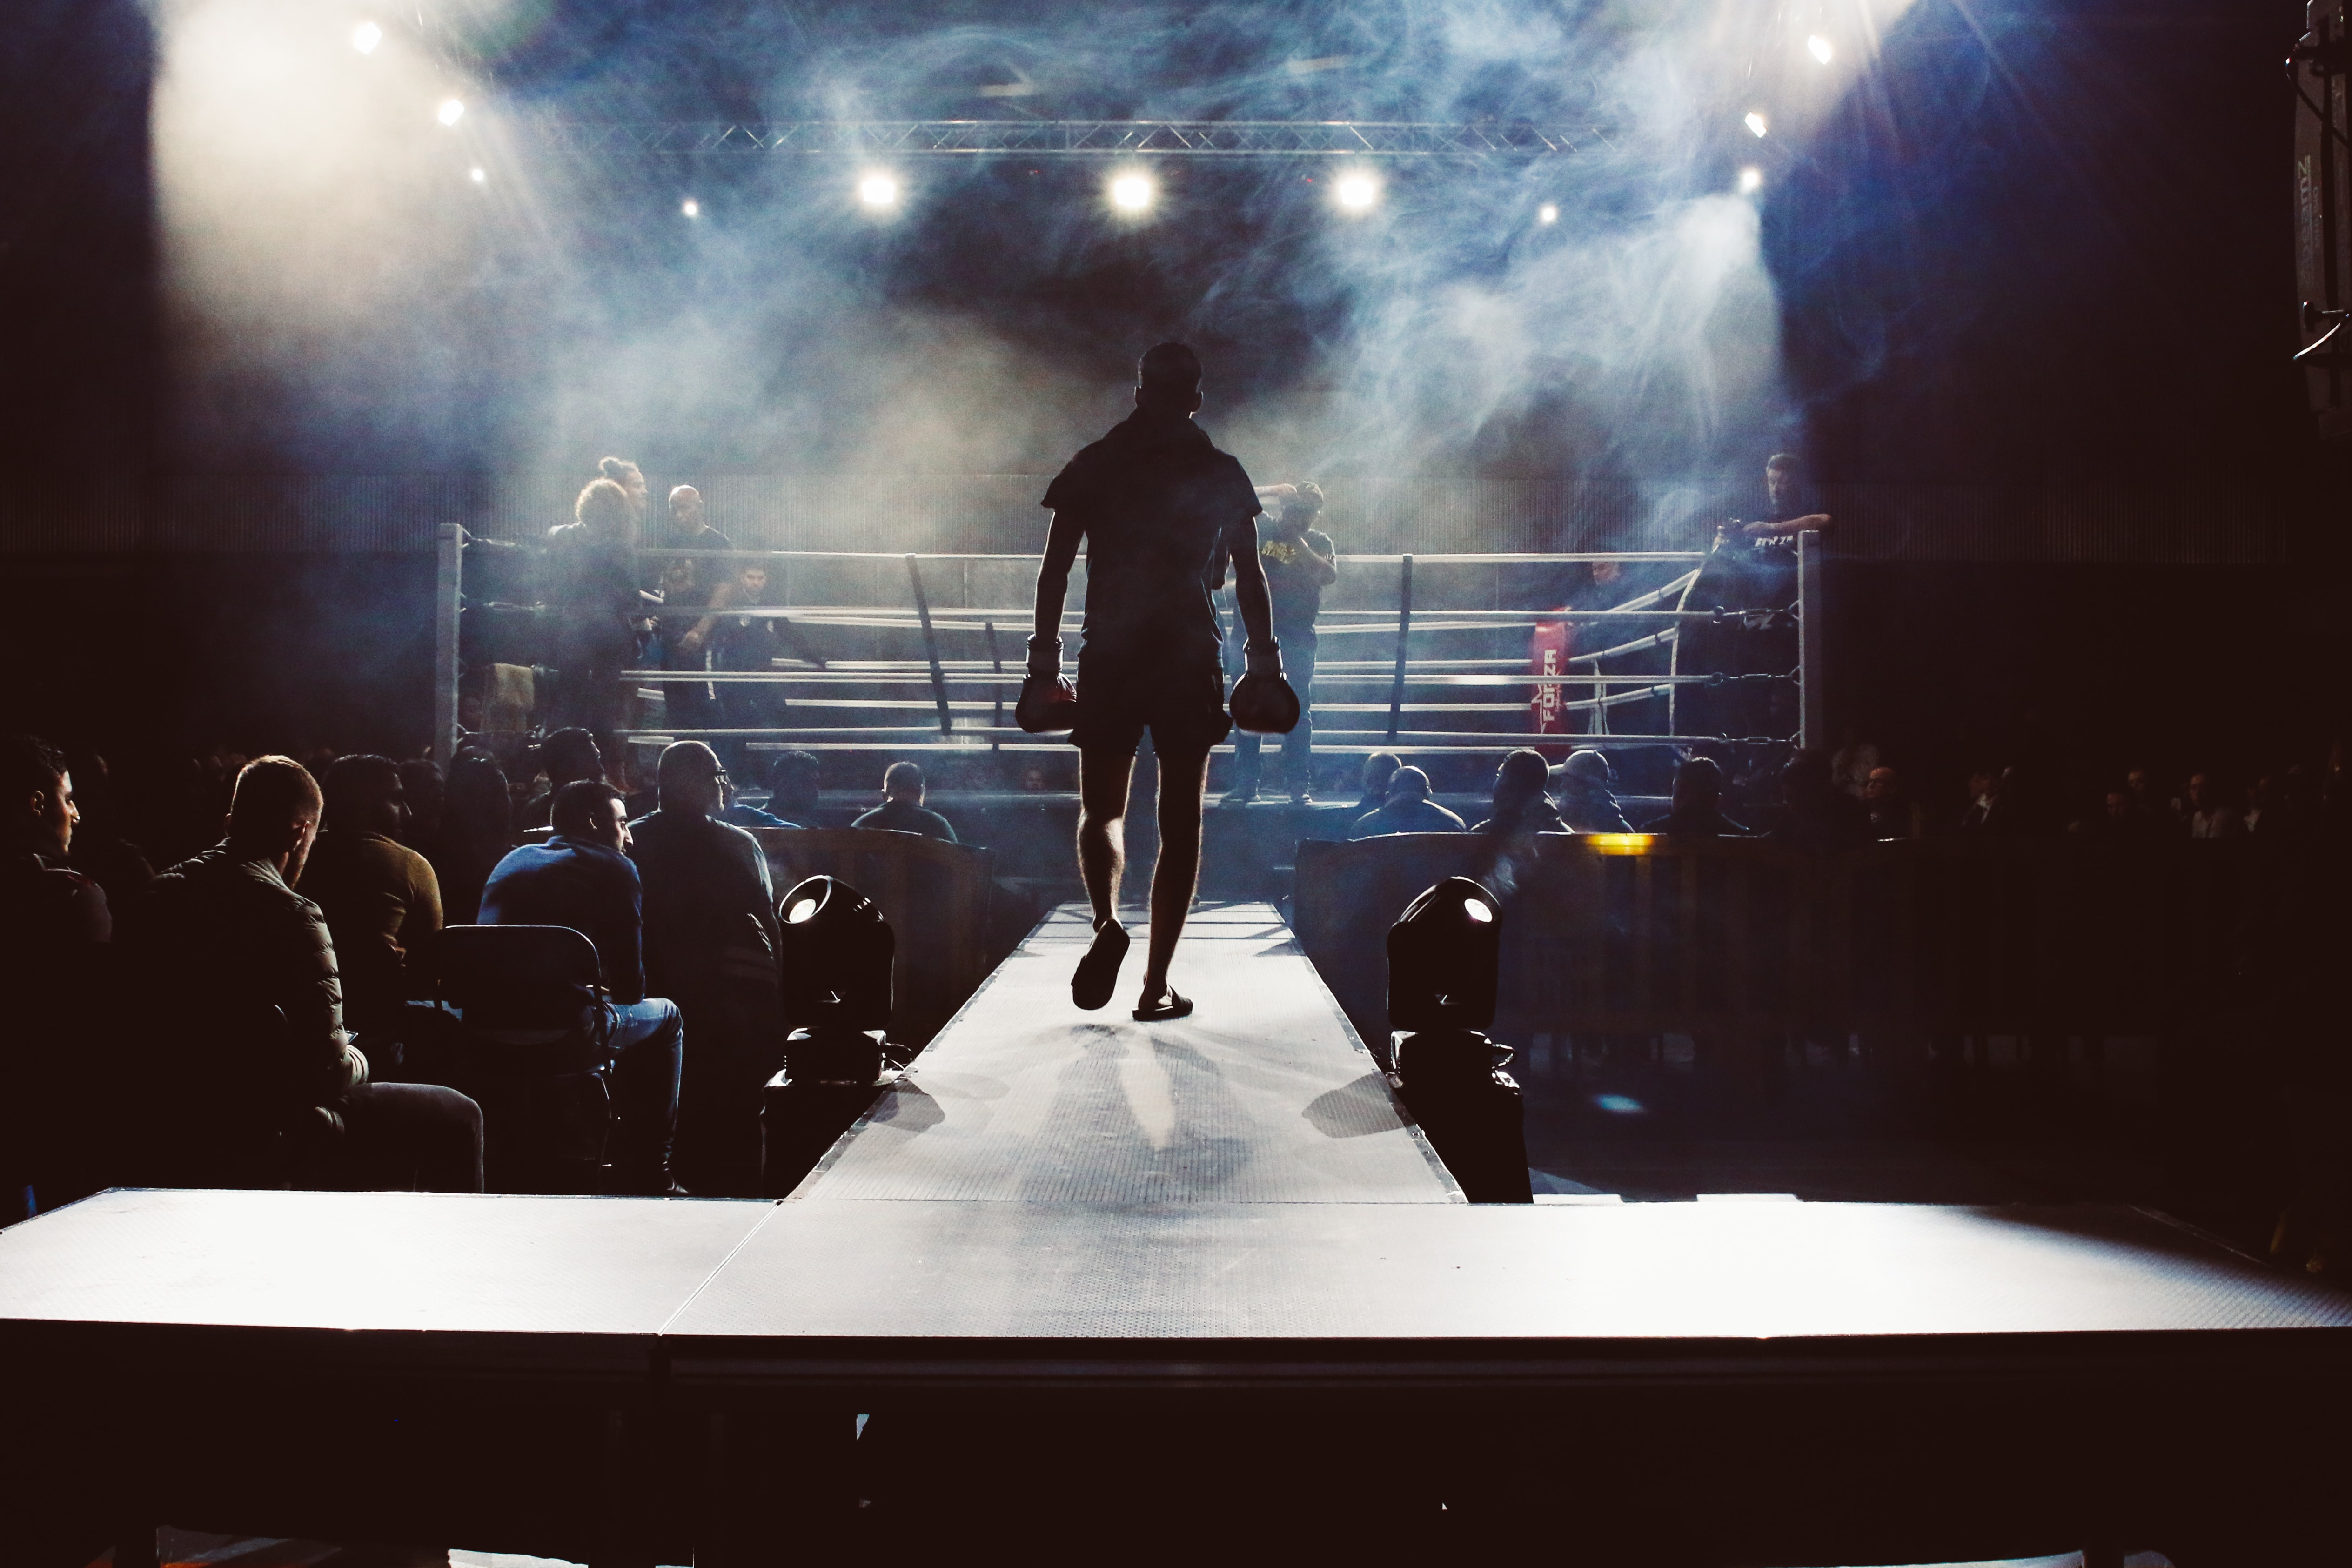 man standing and walking going on boxing ring surrounded with people